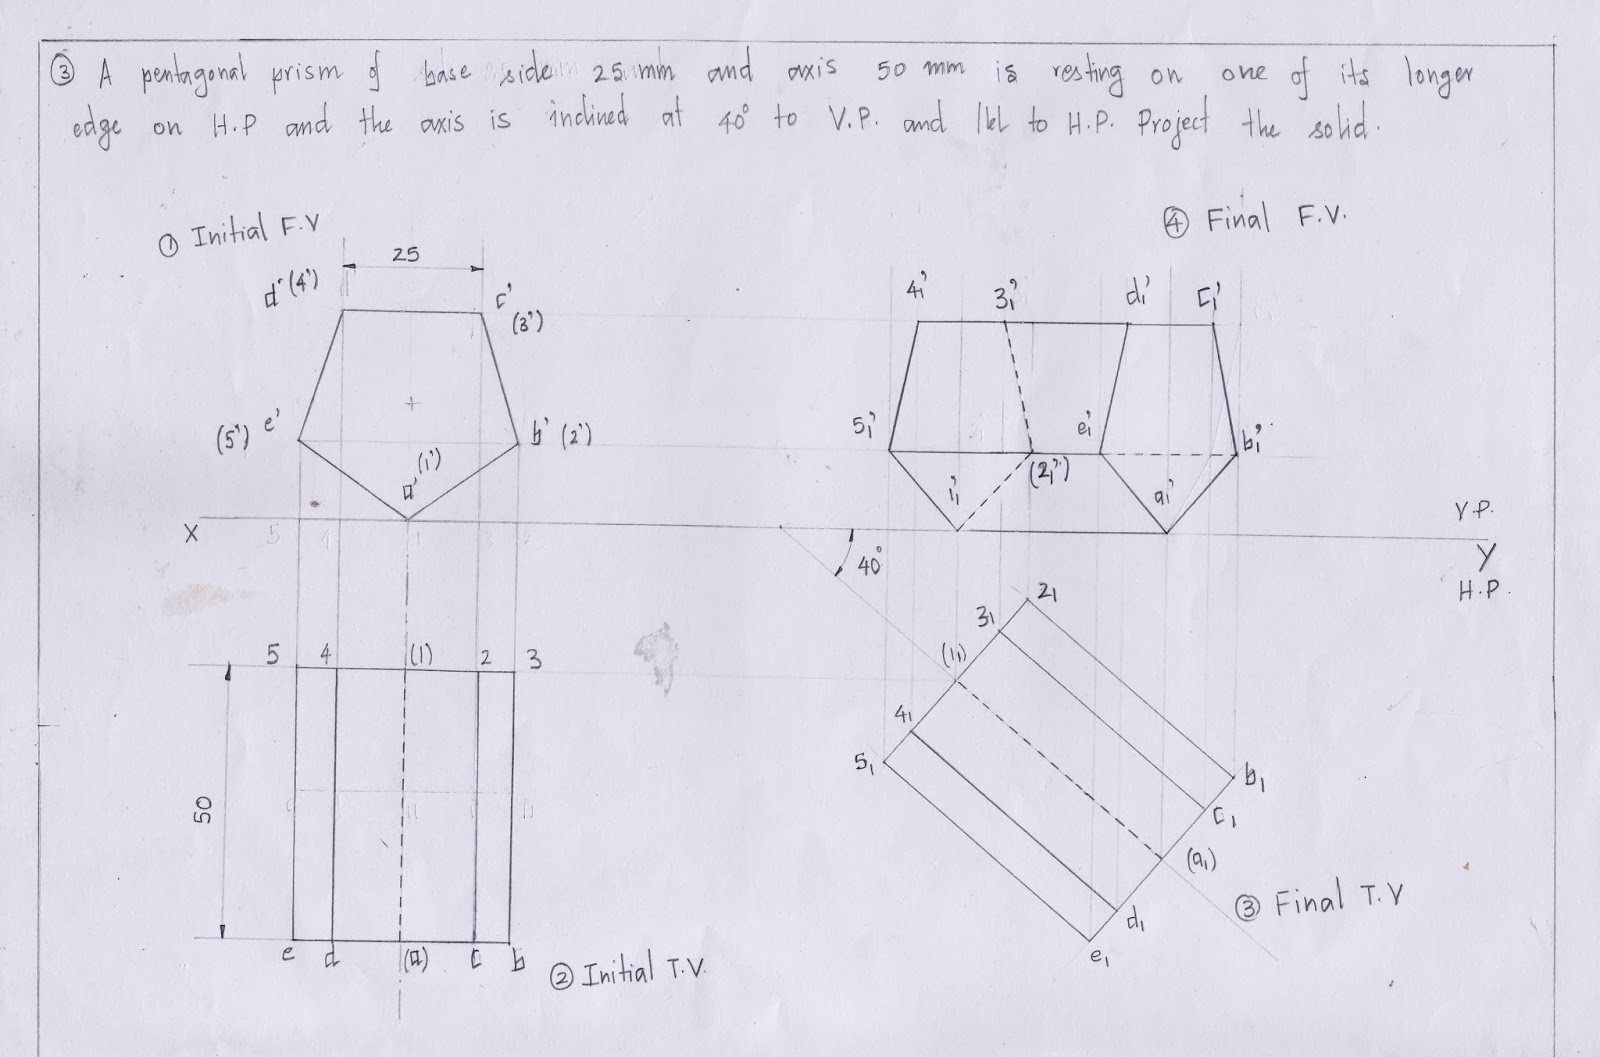 Planes Engineering Schematic Circuit Diagram Symbols Wow Schematics Graphics For Engineers Projection Of Solids Rh Kceengineeringgraphics Blogspot Com Electrical Pet Recipes